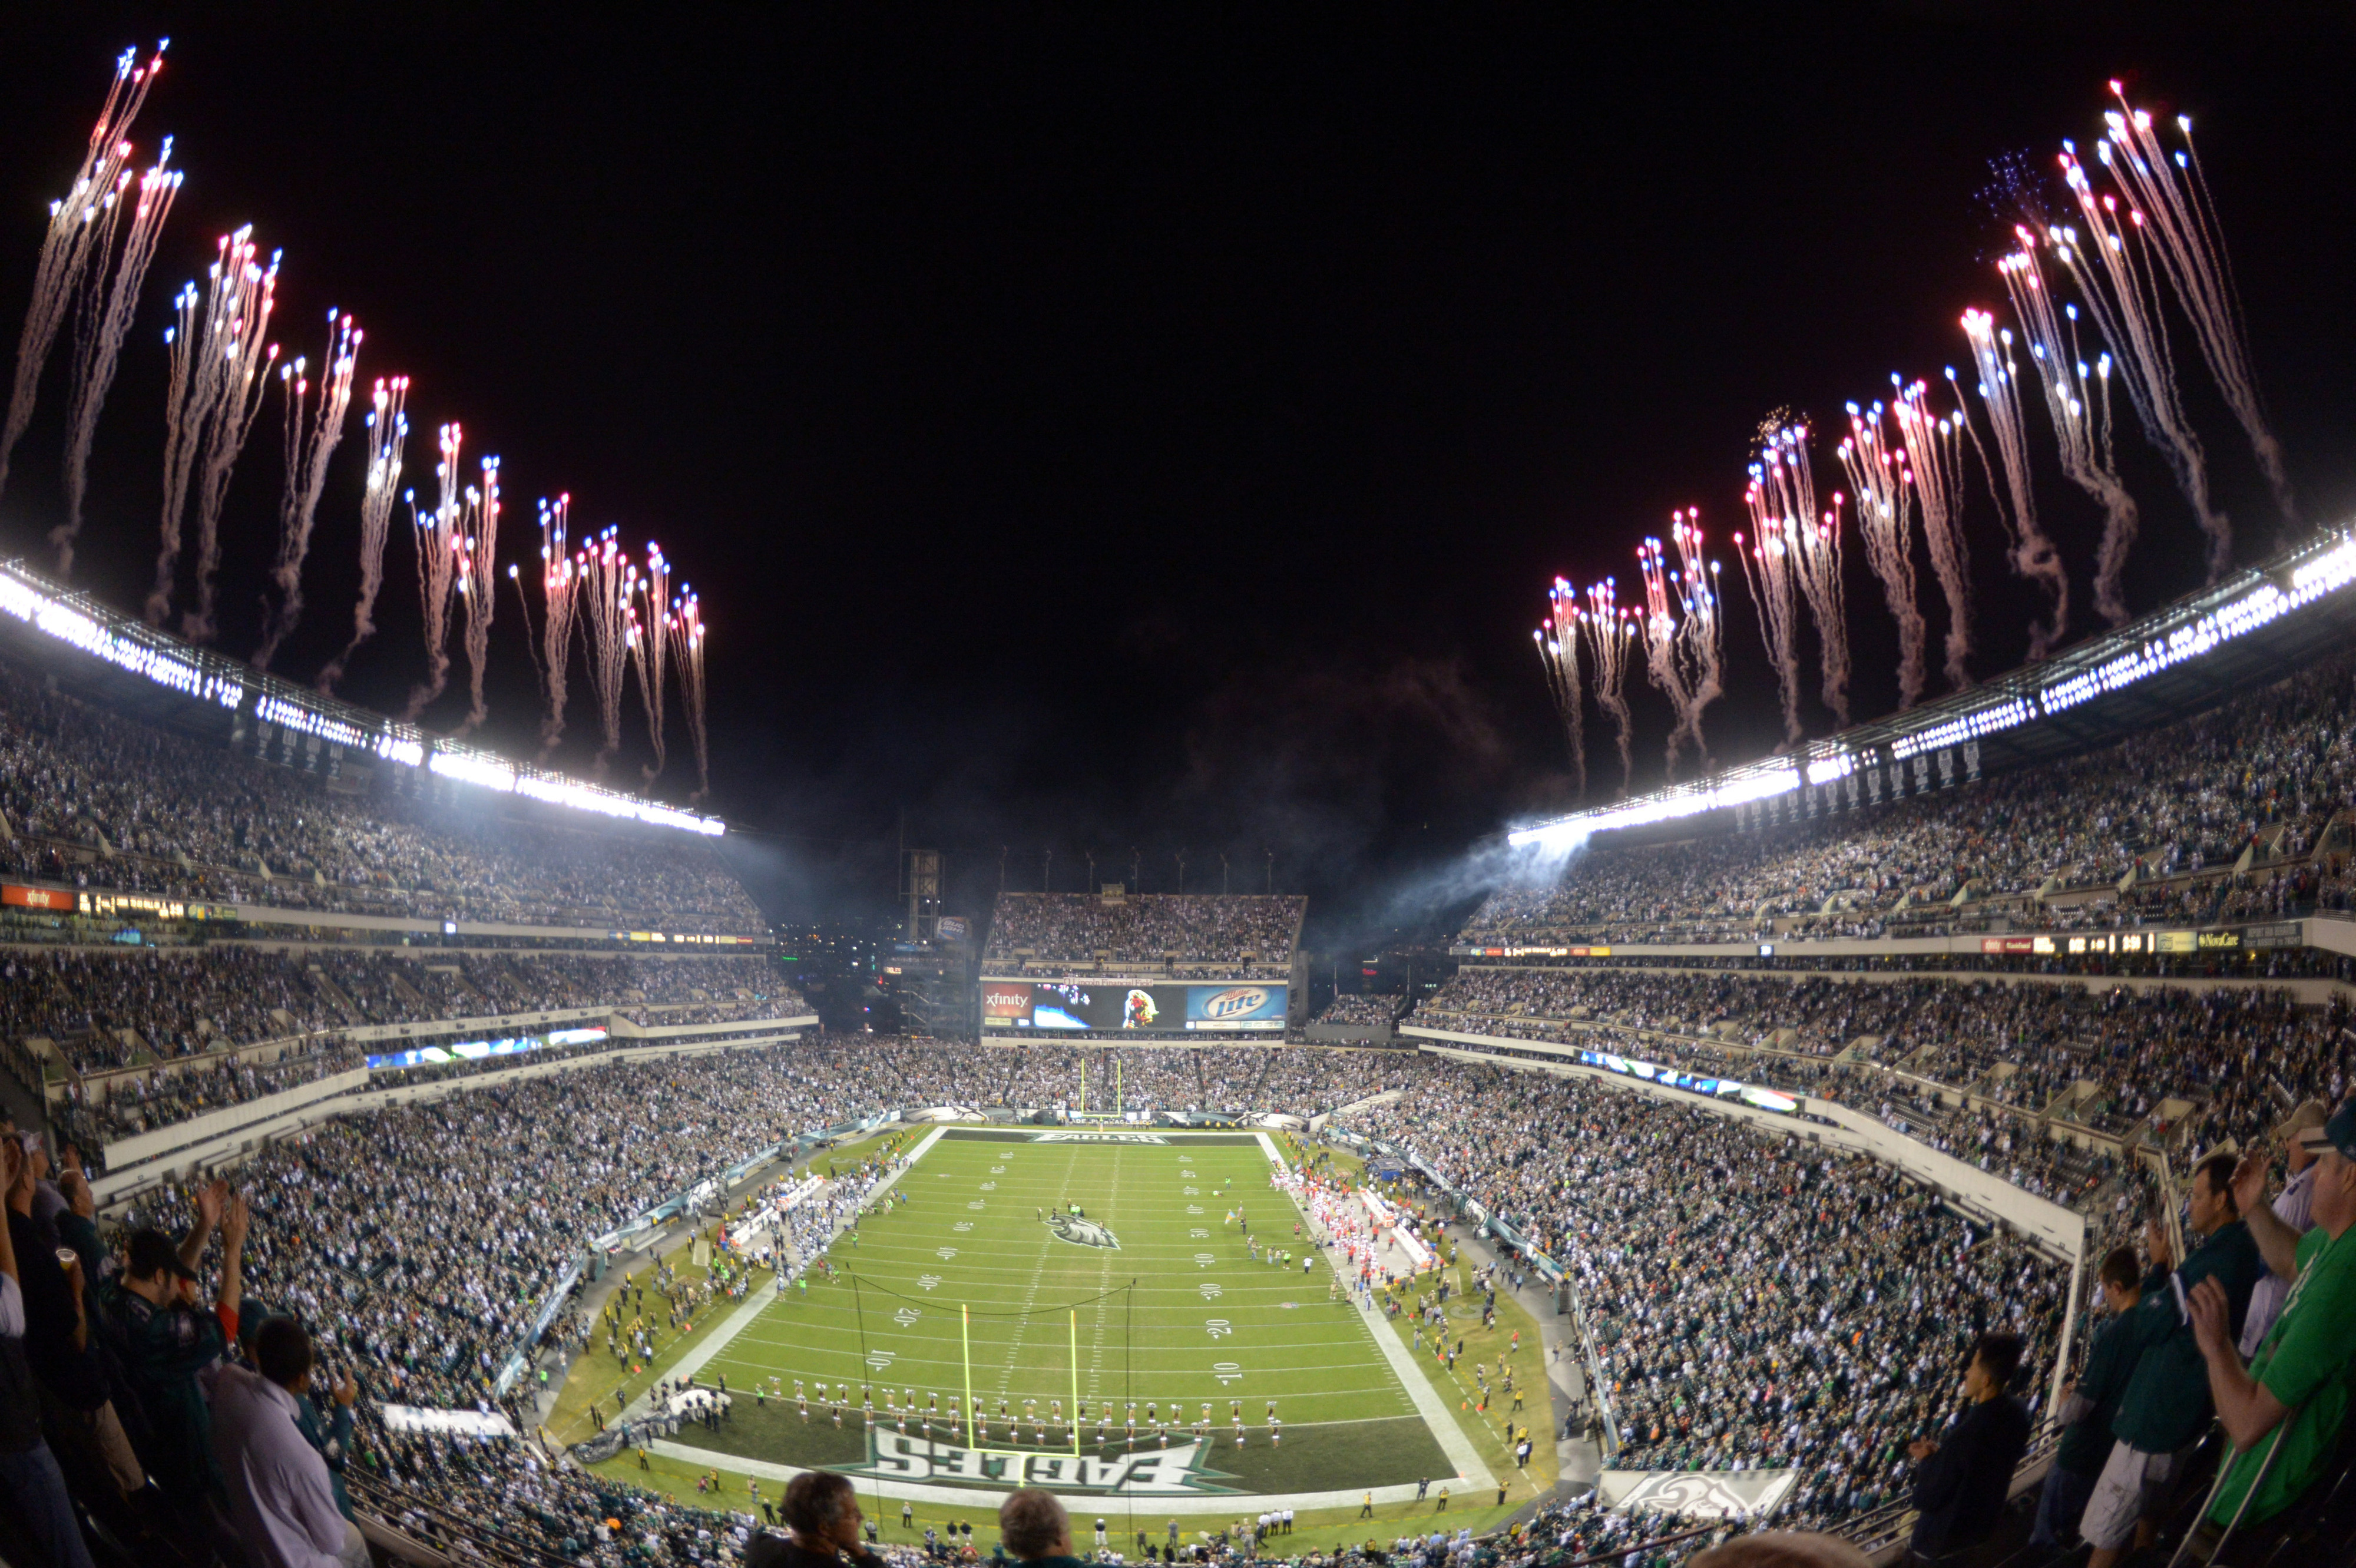 The Eagles set off all their celebratory fireworks despite losing